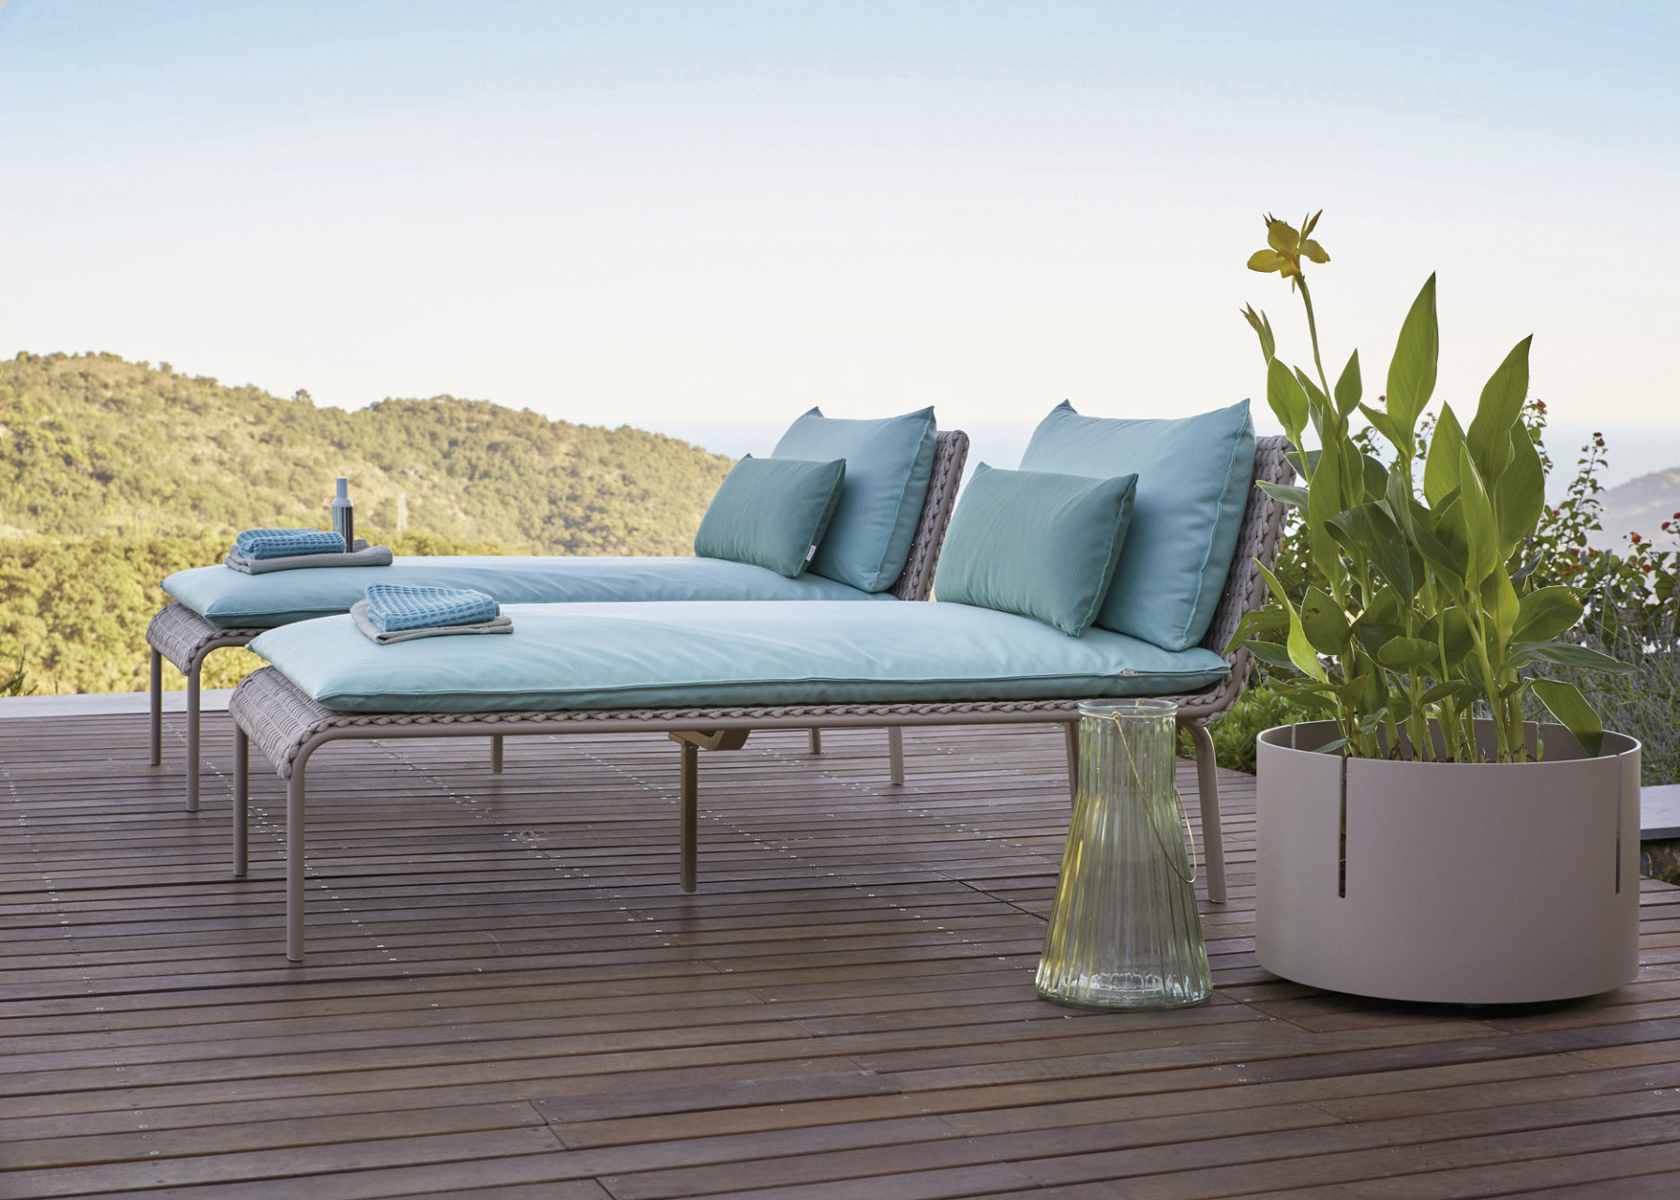 High end outdoor key west italian lounger italian for High end outdoor furniture